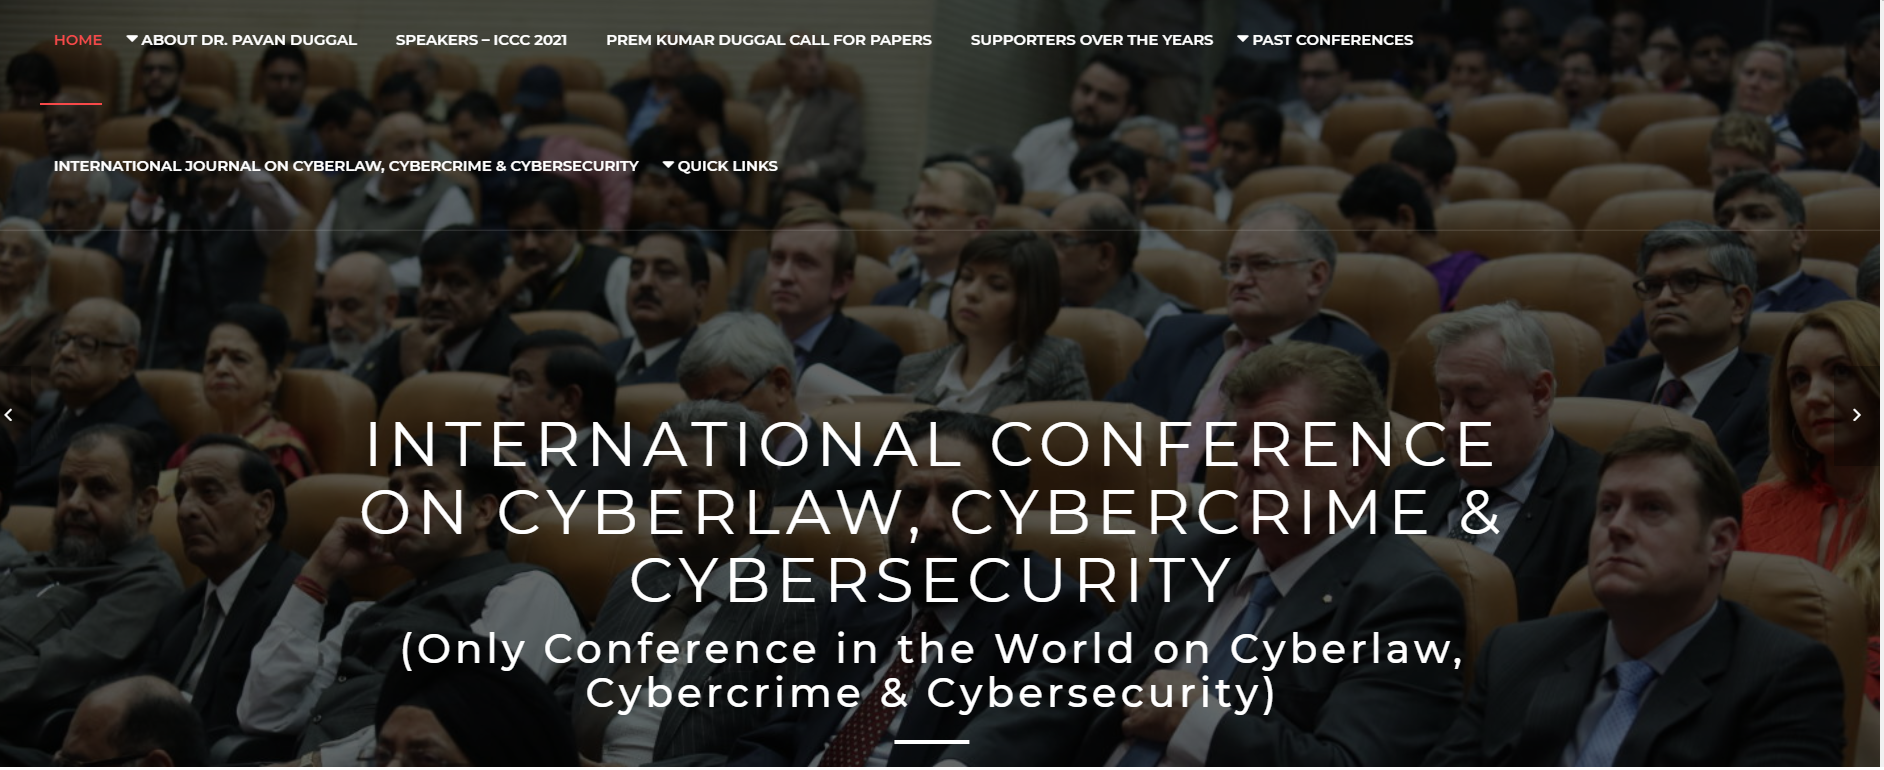 International Conference on Cyberlaw, Cybercrime & Cybersecurity